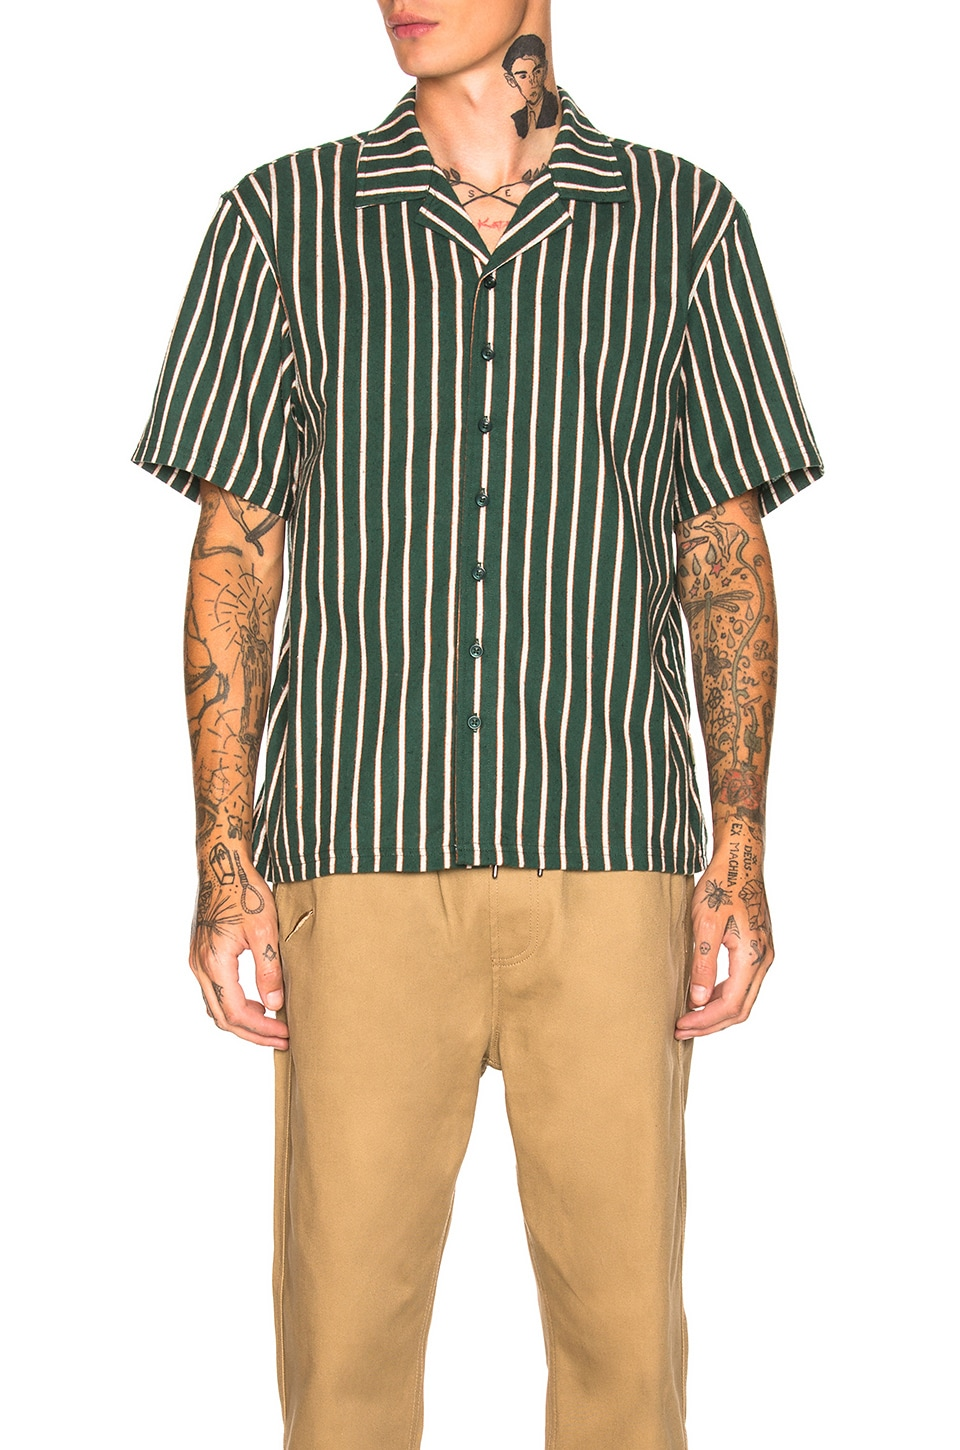 Publish Lopez Shirt in Green